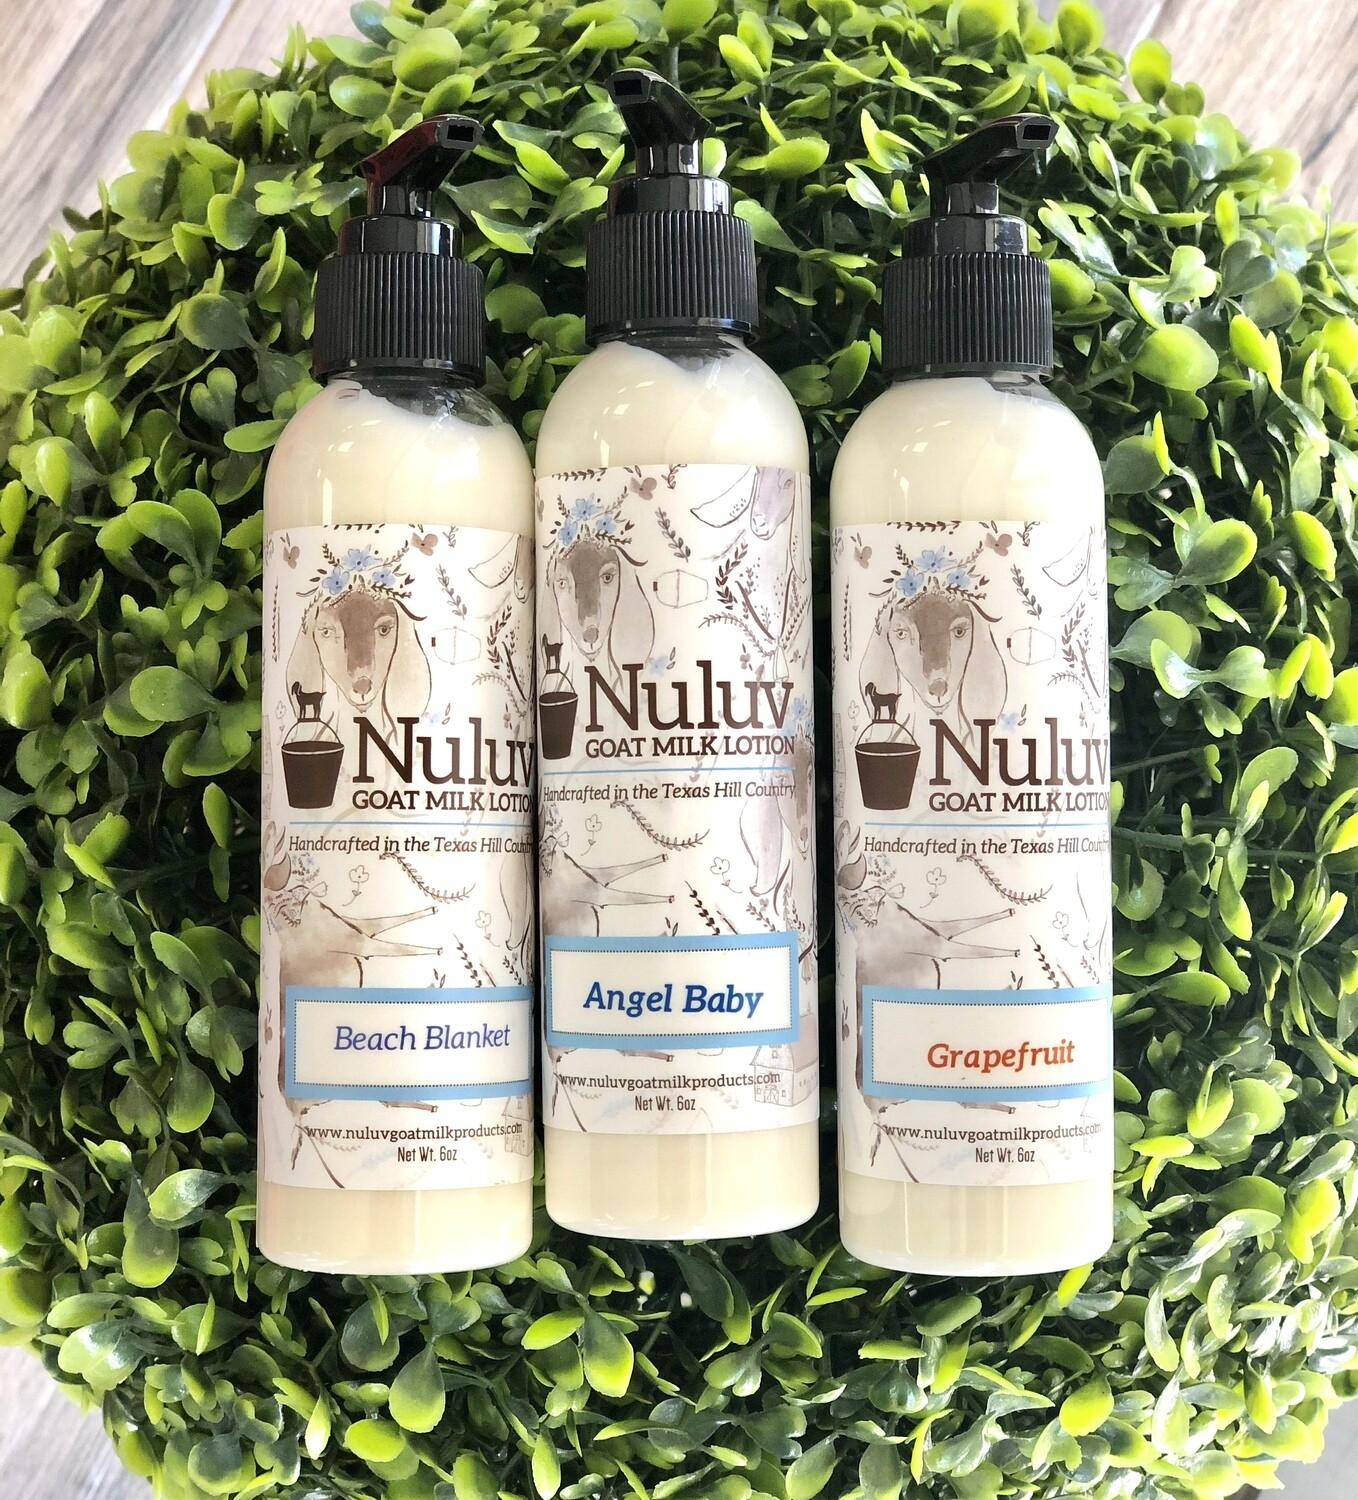 Nuluv Goat Milk Lotion